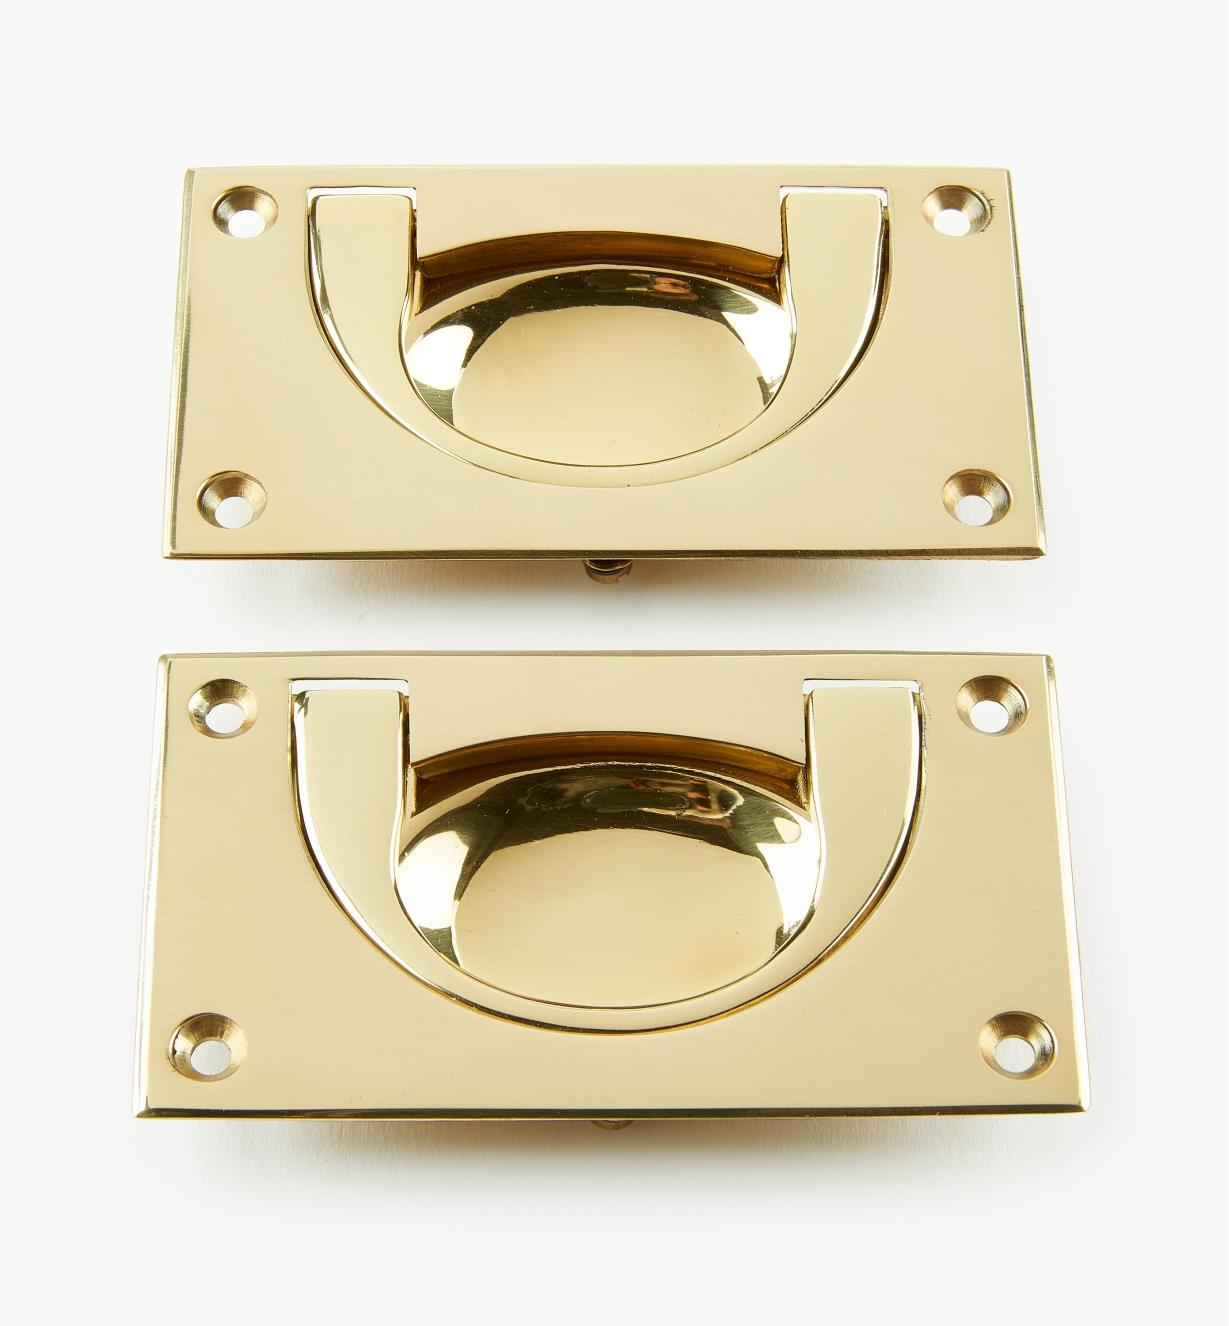 "00A1903 - 4"" x 2 3/16"" x 1/2"" Campaign Chest Flush Handles, pr."